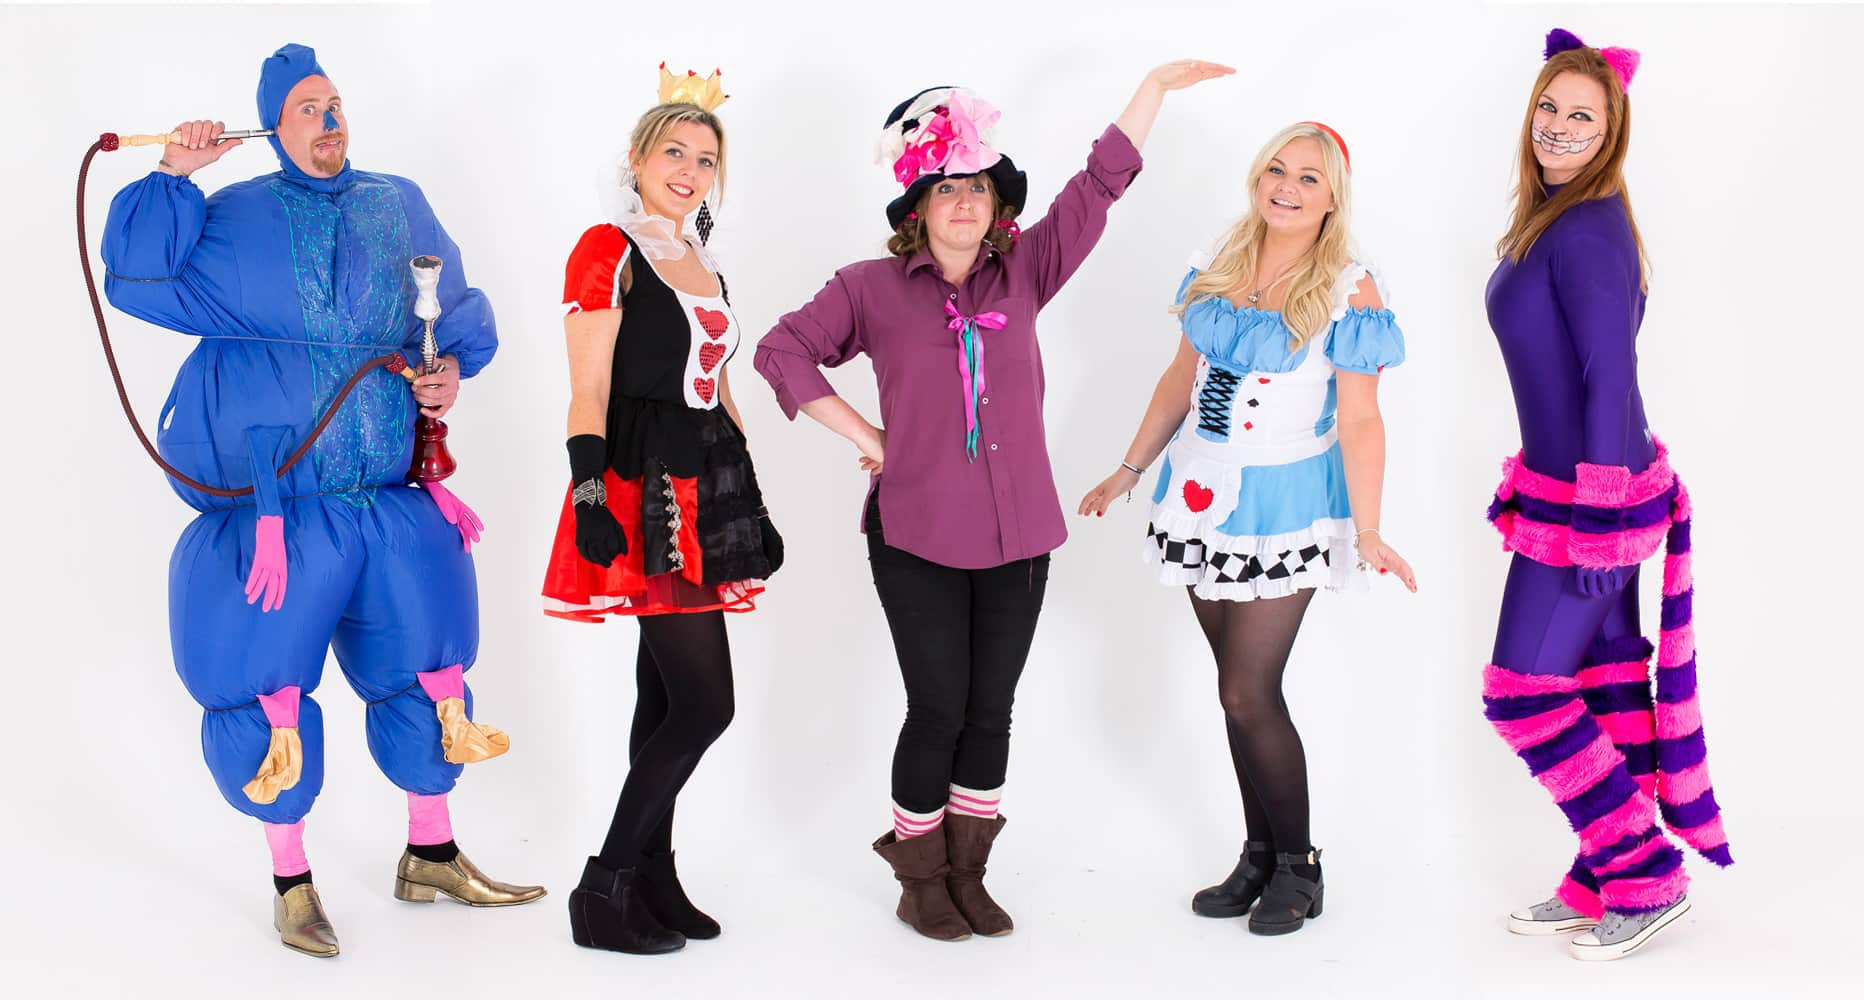 Some of the team from LNOF dressed up as Absolem, the Cheshire Cat, The Mad Hatter, Alice and the Queen of Hearts from Alice in Wonderland